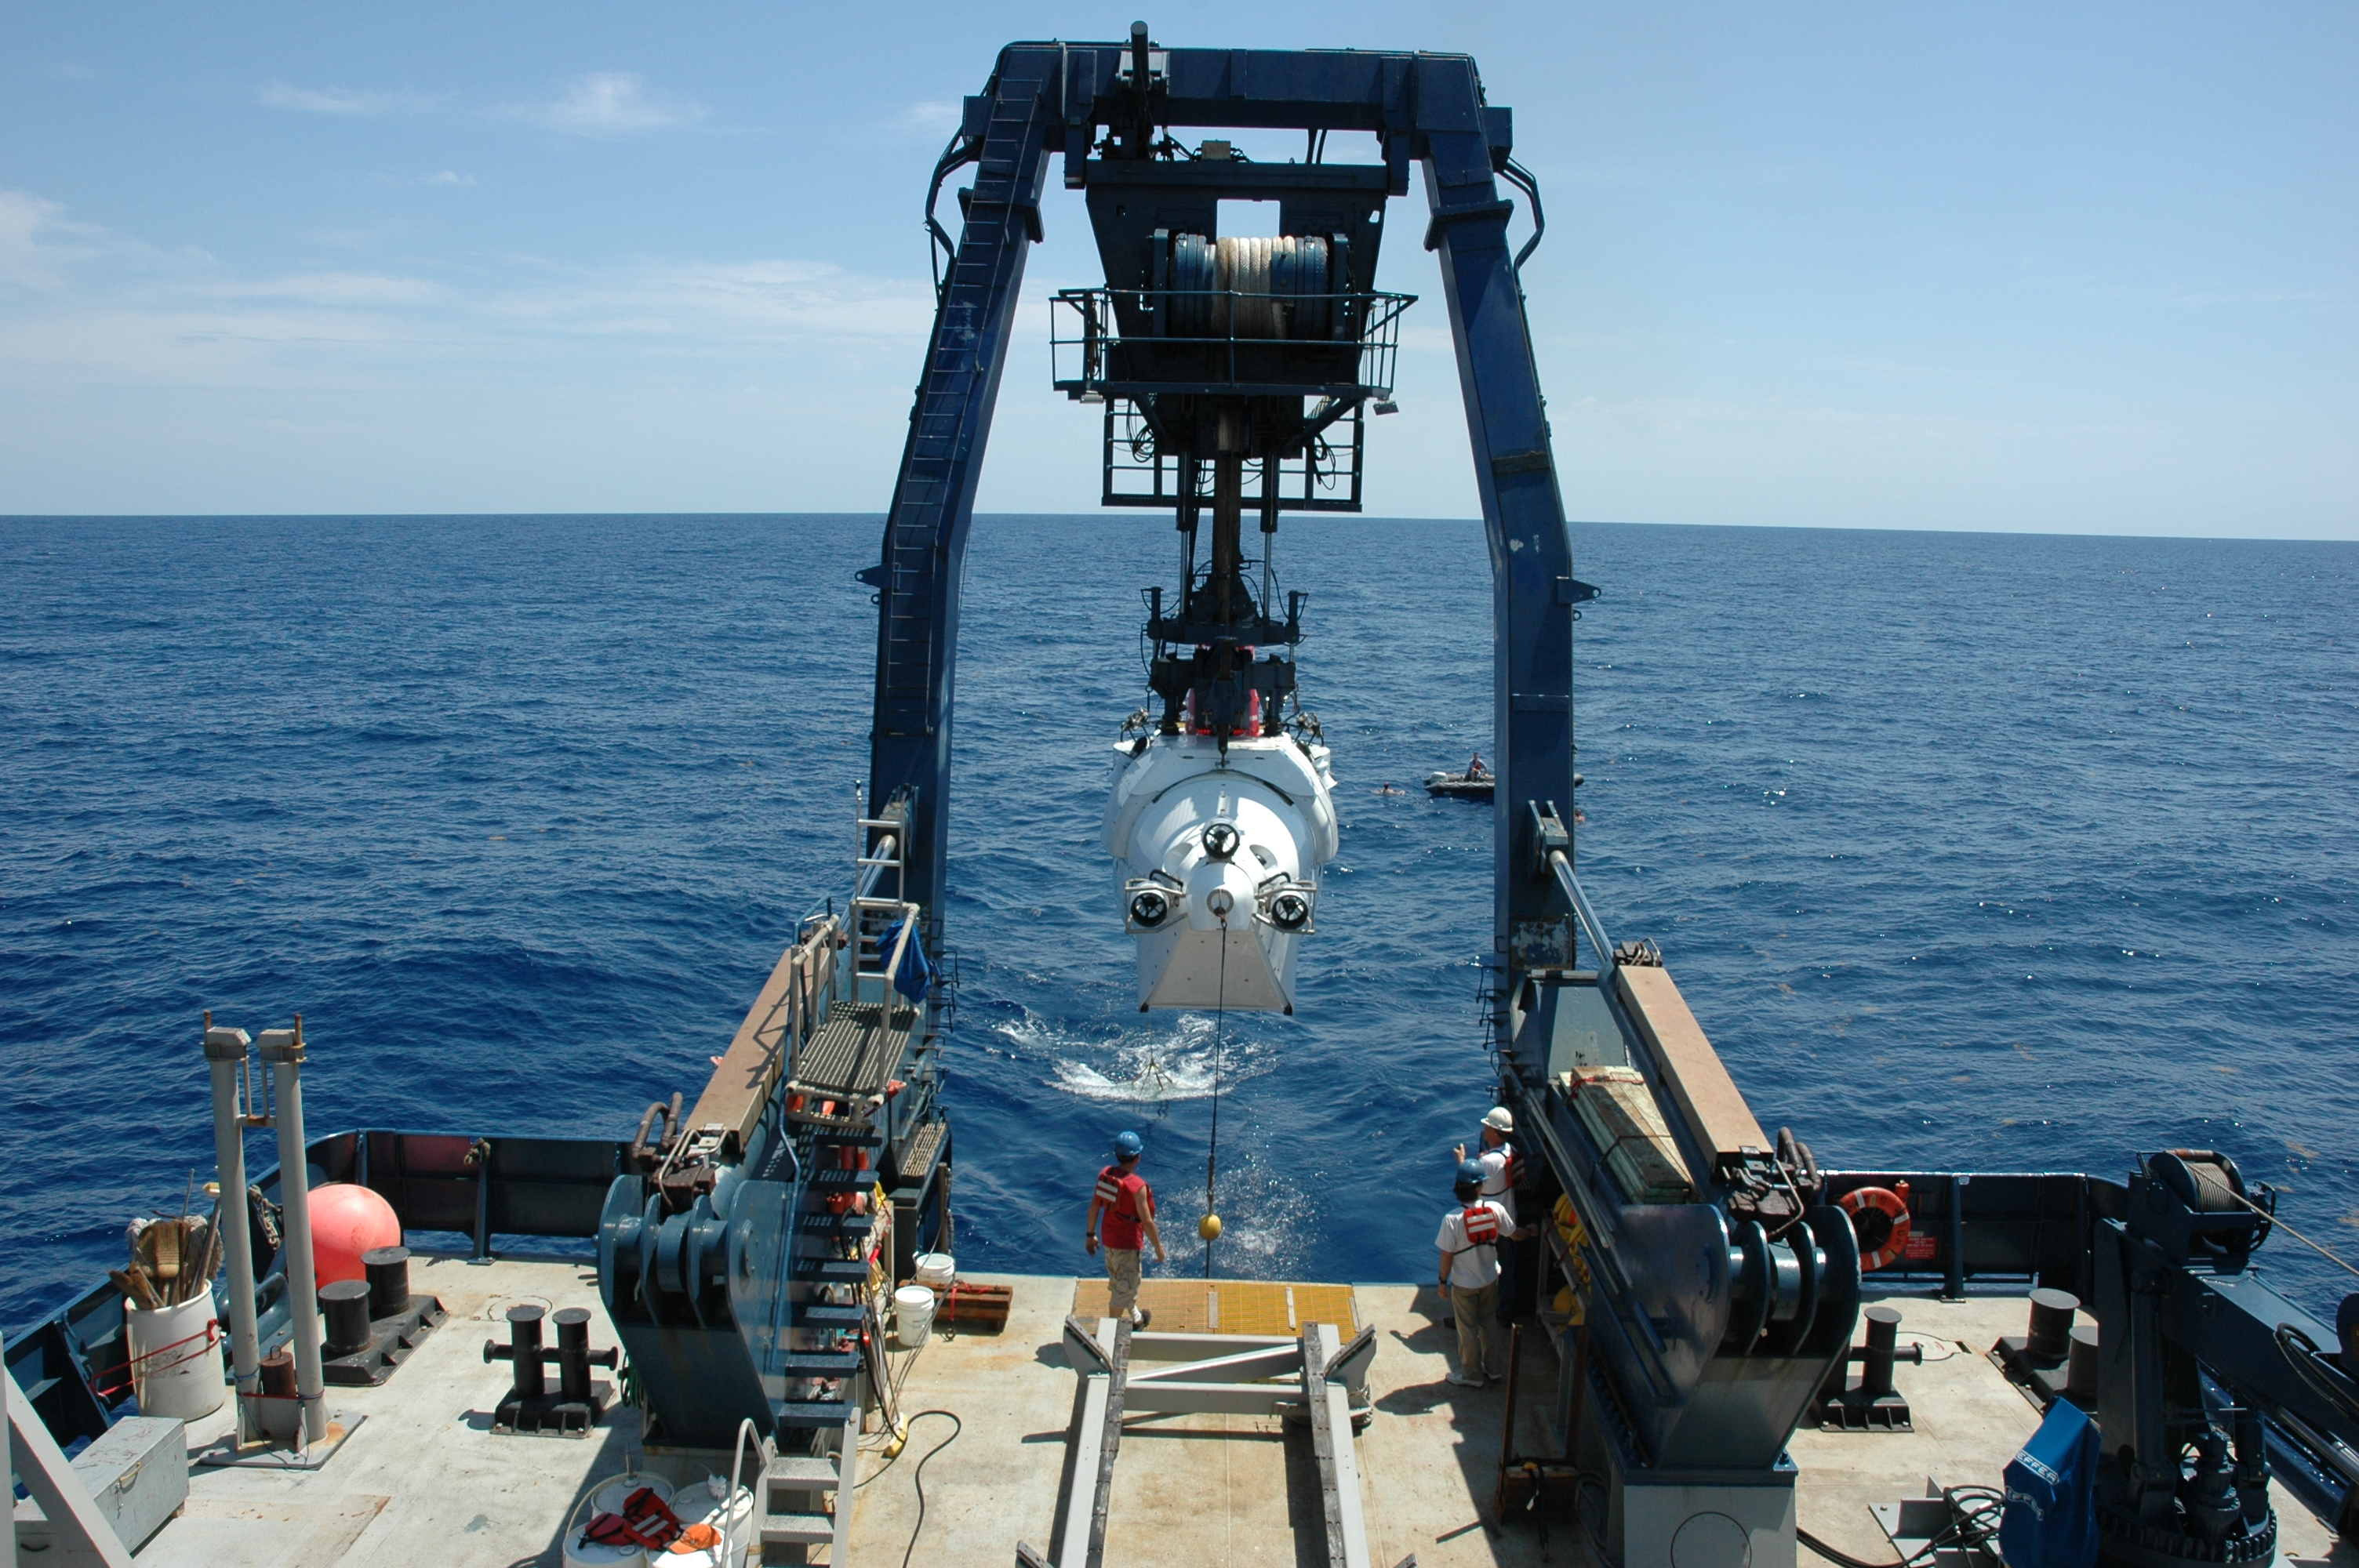 <div style='color:#000000;'><br /><br /><h2>ALVIN being deployed in the Gulf of Mexico.</h2>(C)&nbsp;ECOGIG</div>